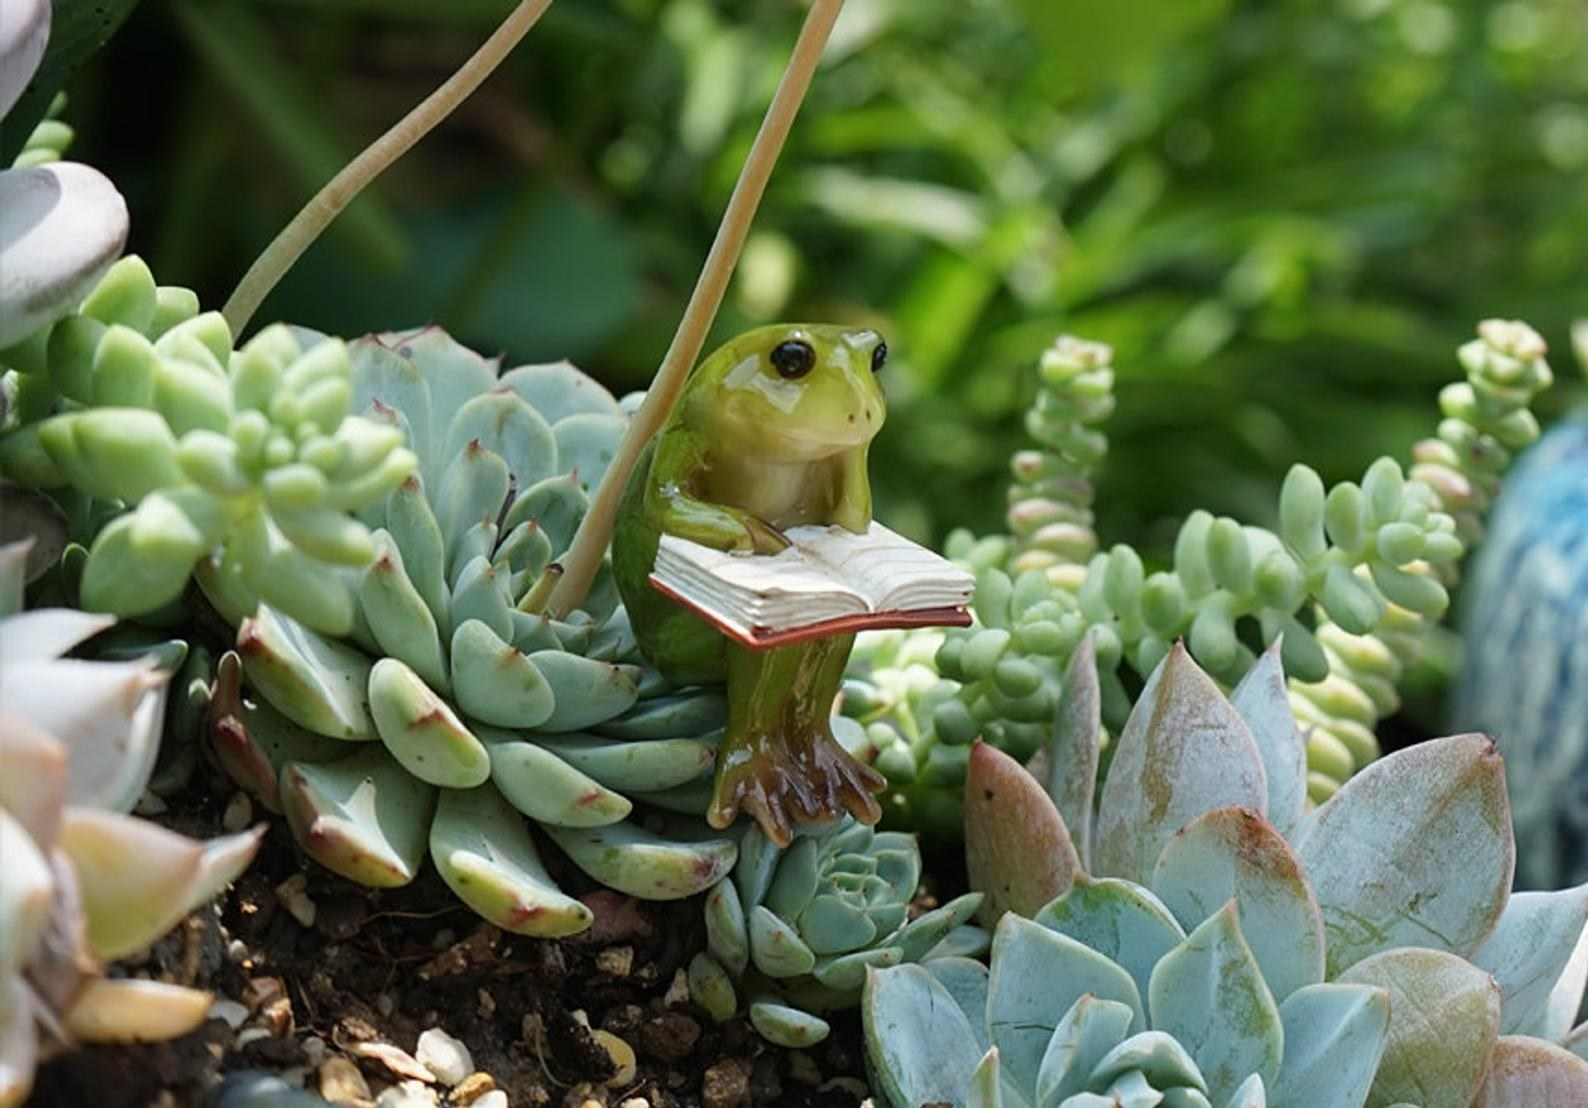 A tiny frog sitting on a succulent reading a book